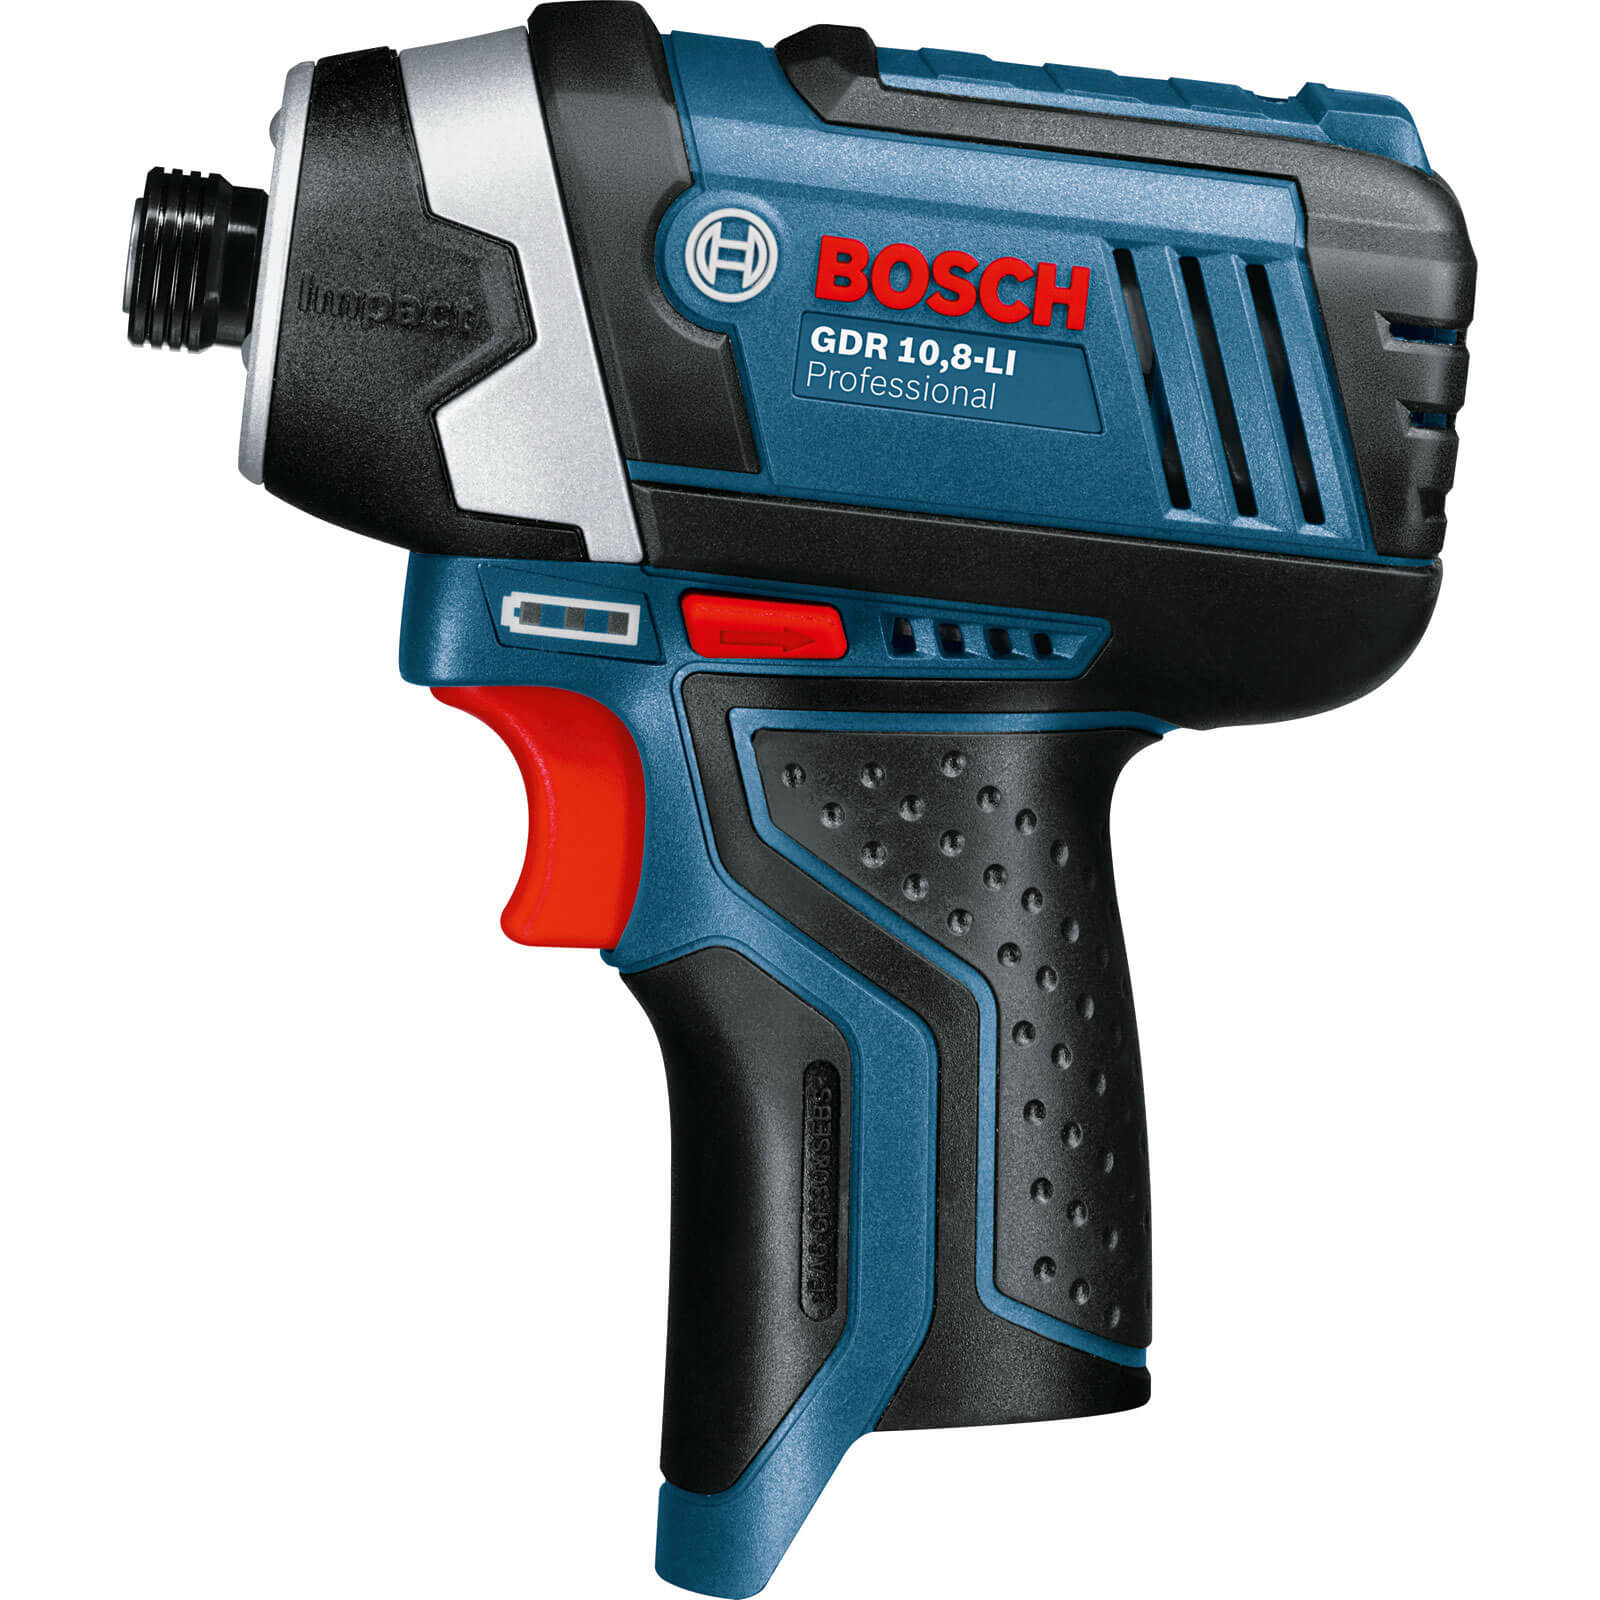 Bosch GDR 10.8-LI 10.8v Cordless Impact Driver without Battery or Charger